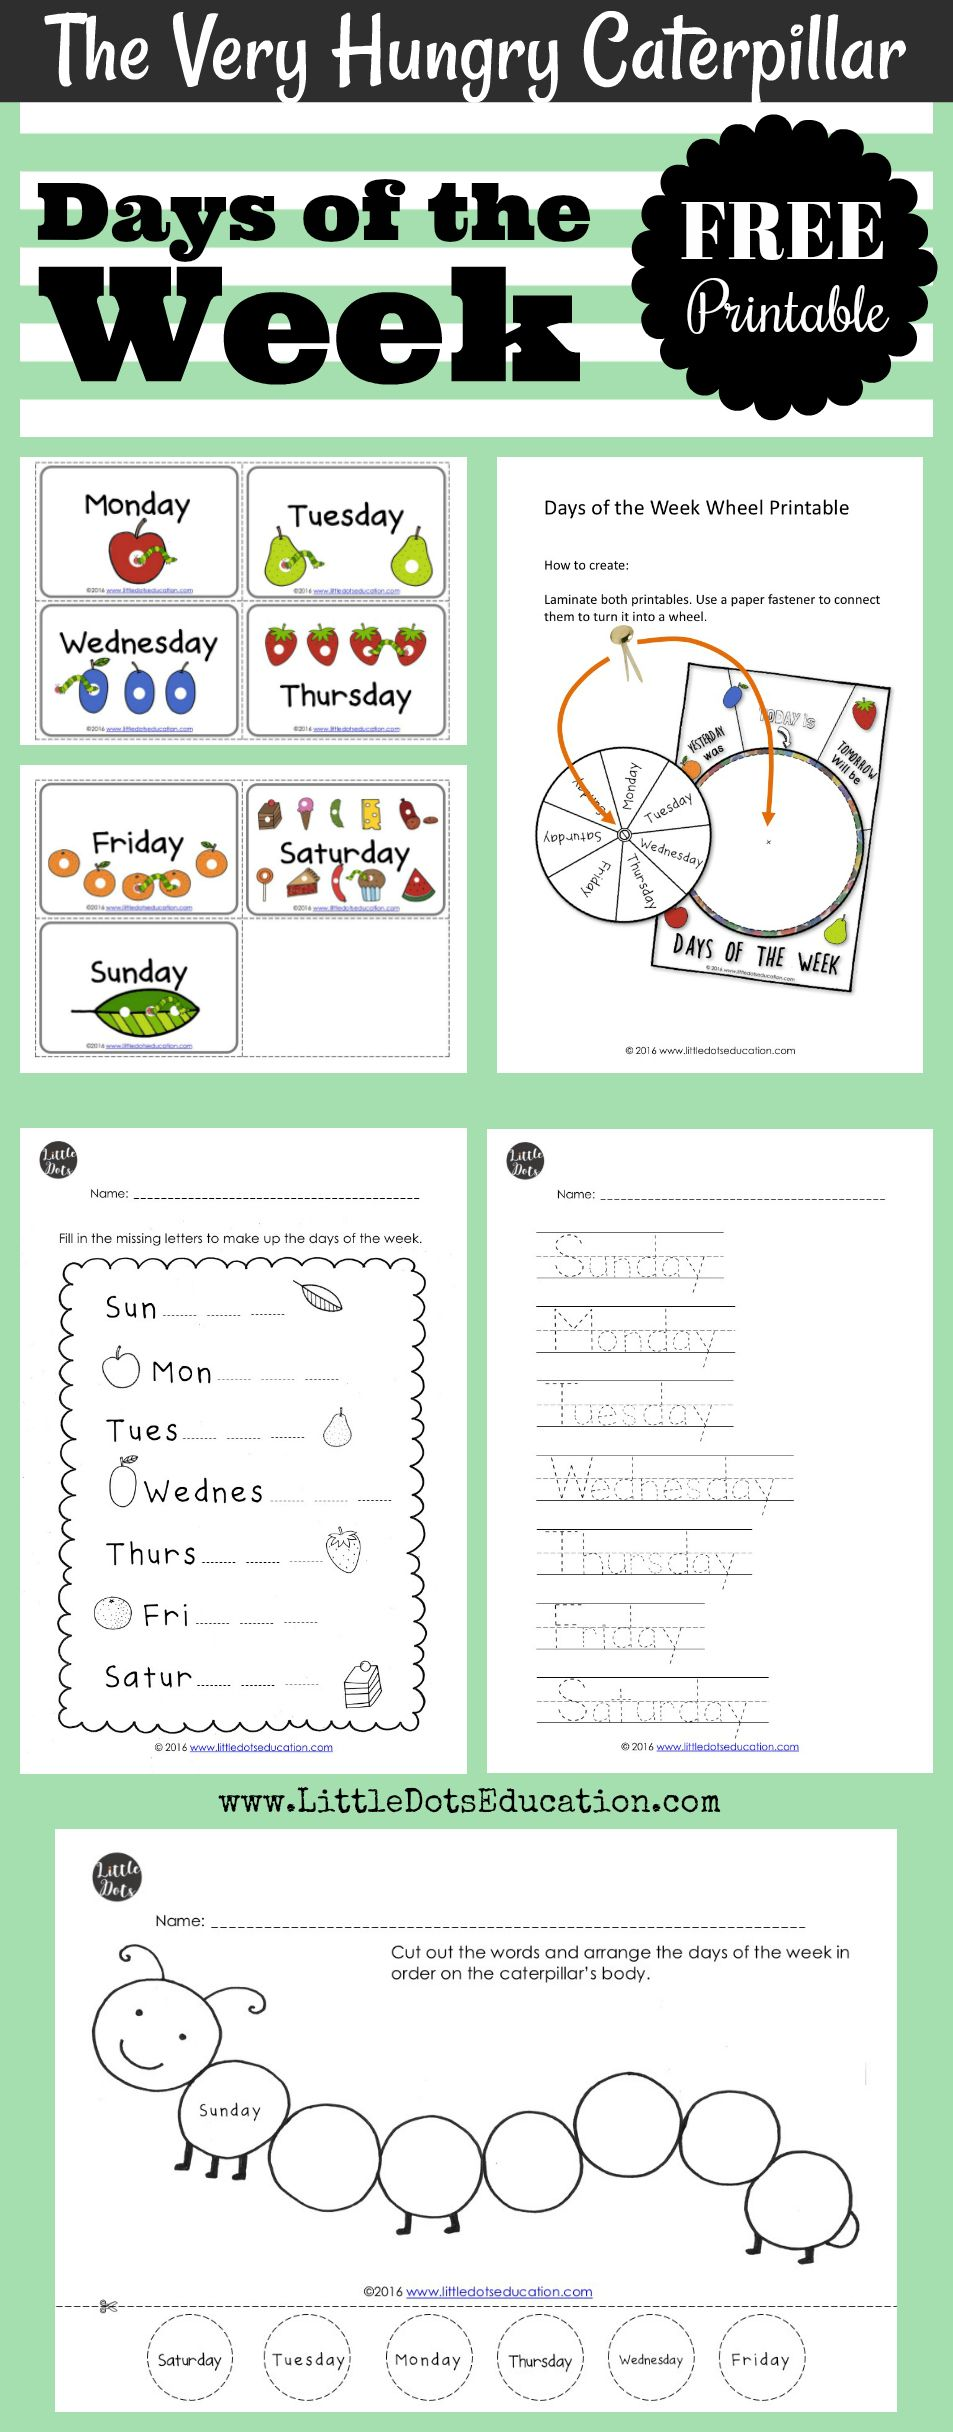 The Very Hungry Caterpillar Theme Free Days Of The Week Printables An Hungry Caterpillar Activities The Very Hungry Caterpillar Activities Very Hungry Caterpillar [ 2432 x 953 Pixel ]